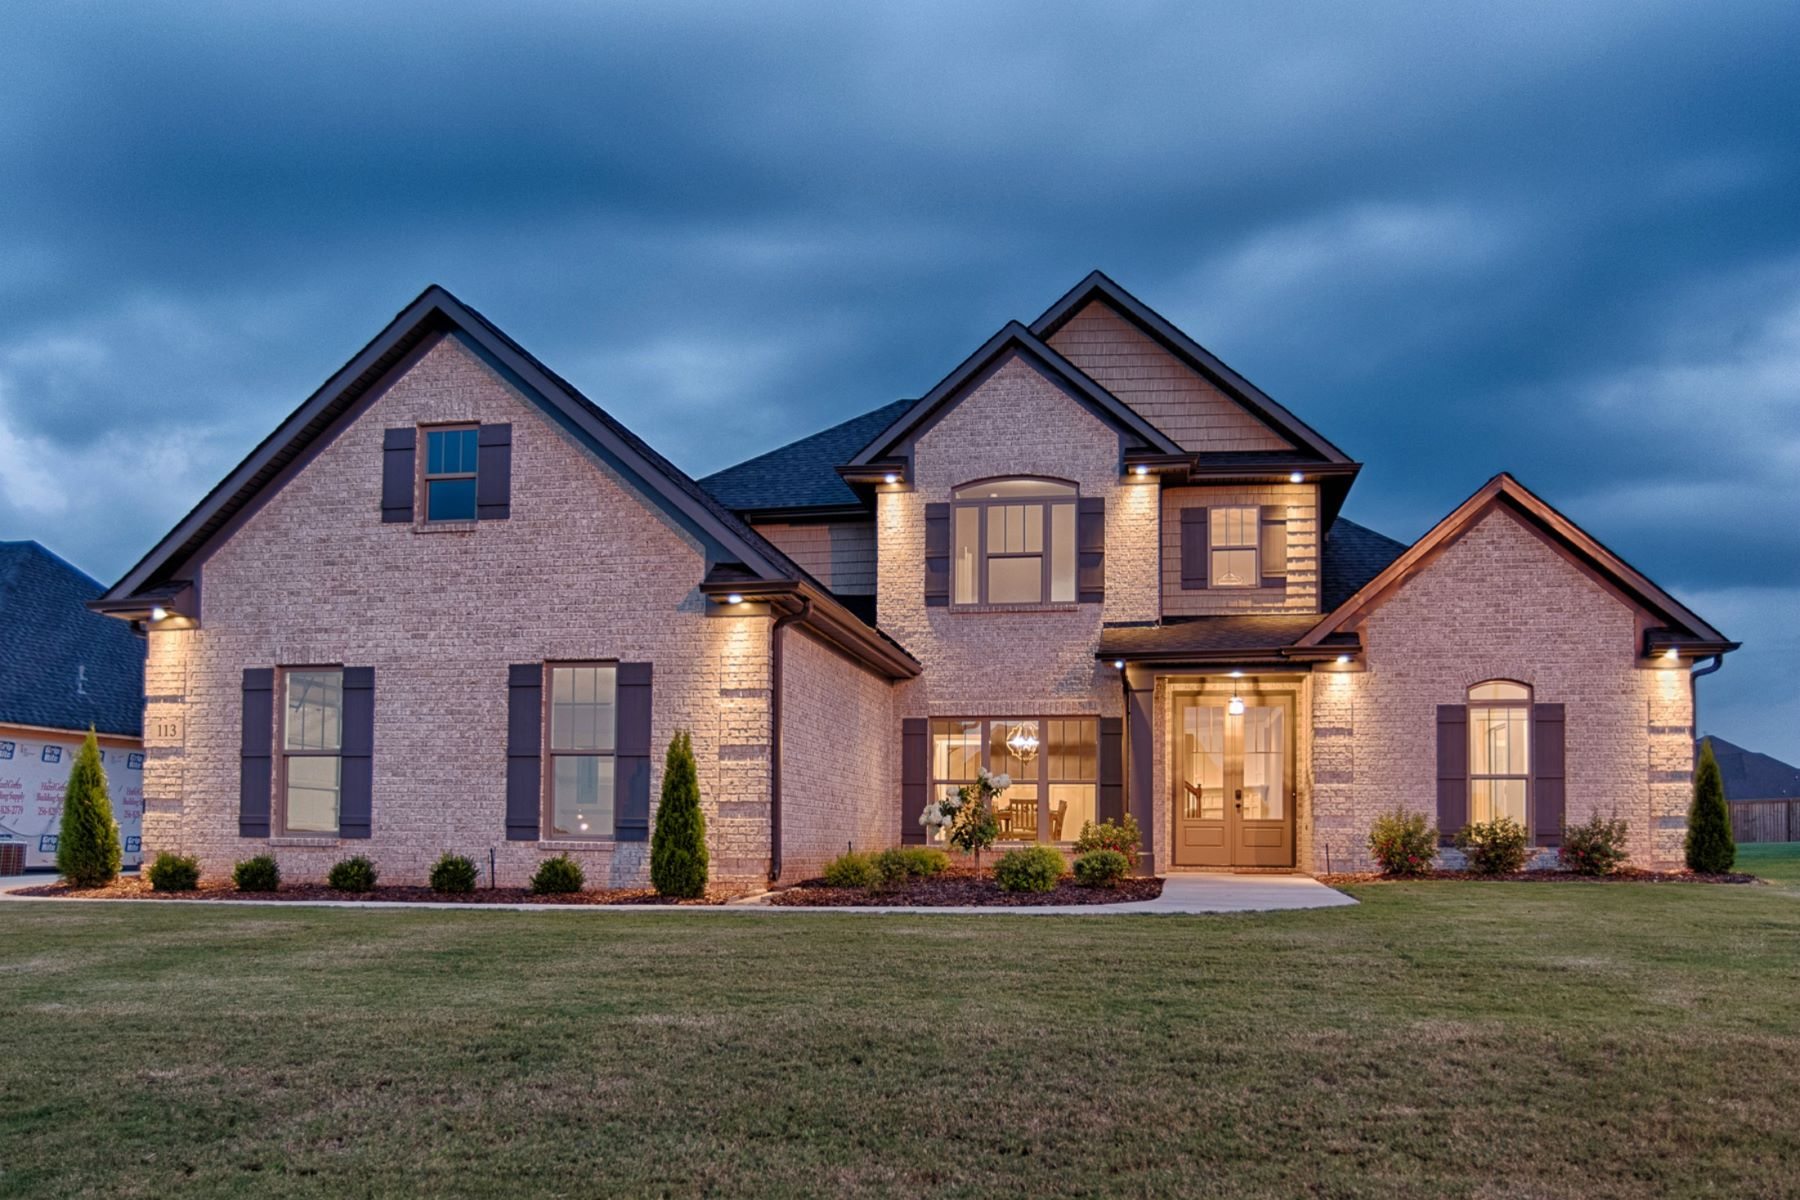 Single Family Home for Active at 121 Stony Crossing Road Meridianville, Alabama 35759 United States